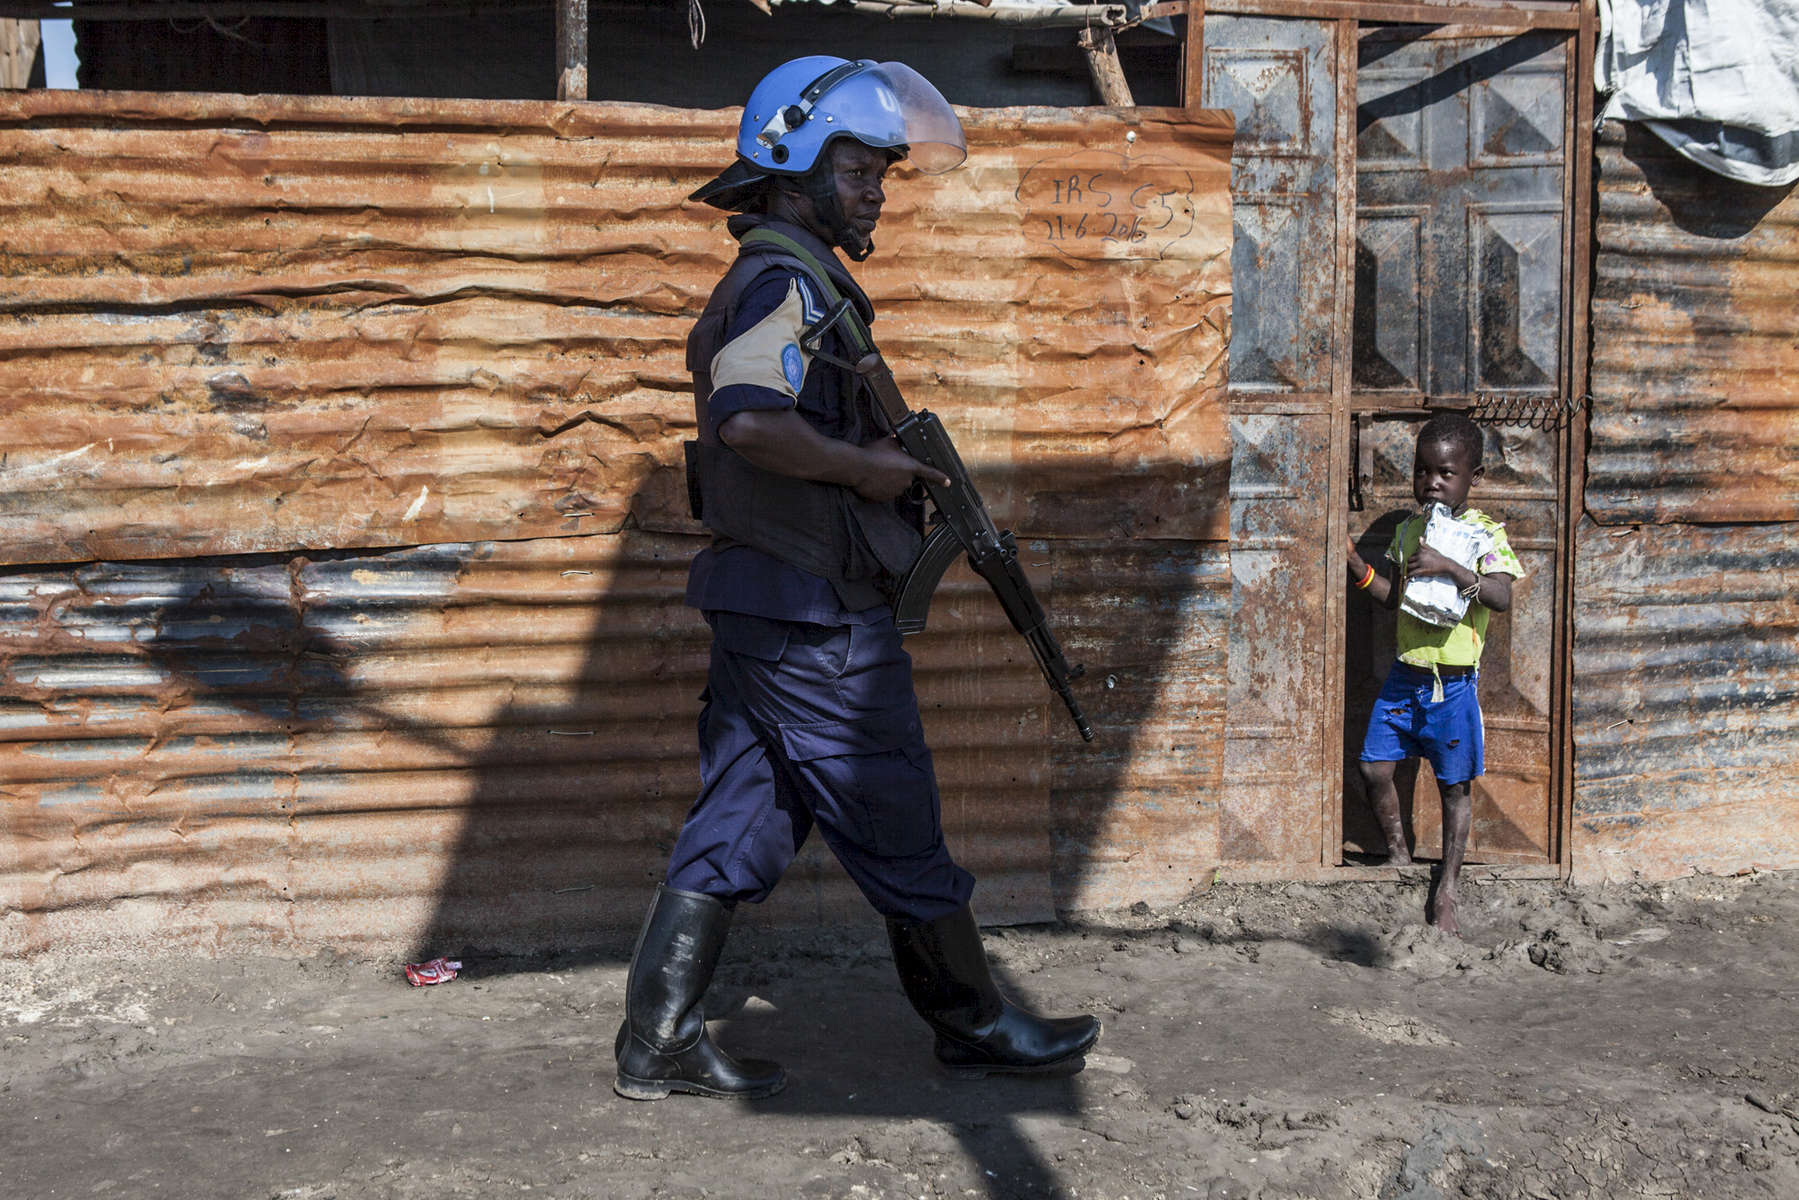 A member of the UN Police performs a search during a patrol in the Protection of Civilians (POC) site at the United Nations Mission in South Sudan (UNMISS) compound in Malakal, South Sudan on Tuesday, July 12, 2016. The Malakal POC site houses over 32,000 displaced people mainly from the Shilluk and Nuer tribes. In February of this year, members of the Dinka tribe, who resided in the camp at the time, carried out a coordinated attack within the site leading to the destruction of hundreds of shelters and many deaths. Since then, most members of the Dinka tribe have fled to Malakal town where they occupy the homes of those still displaced.